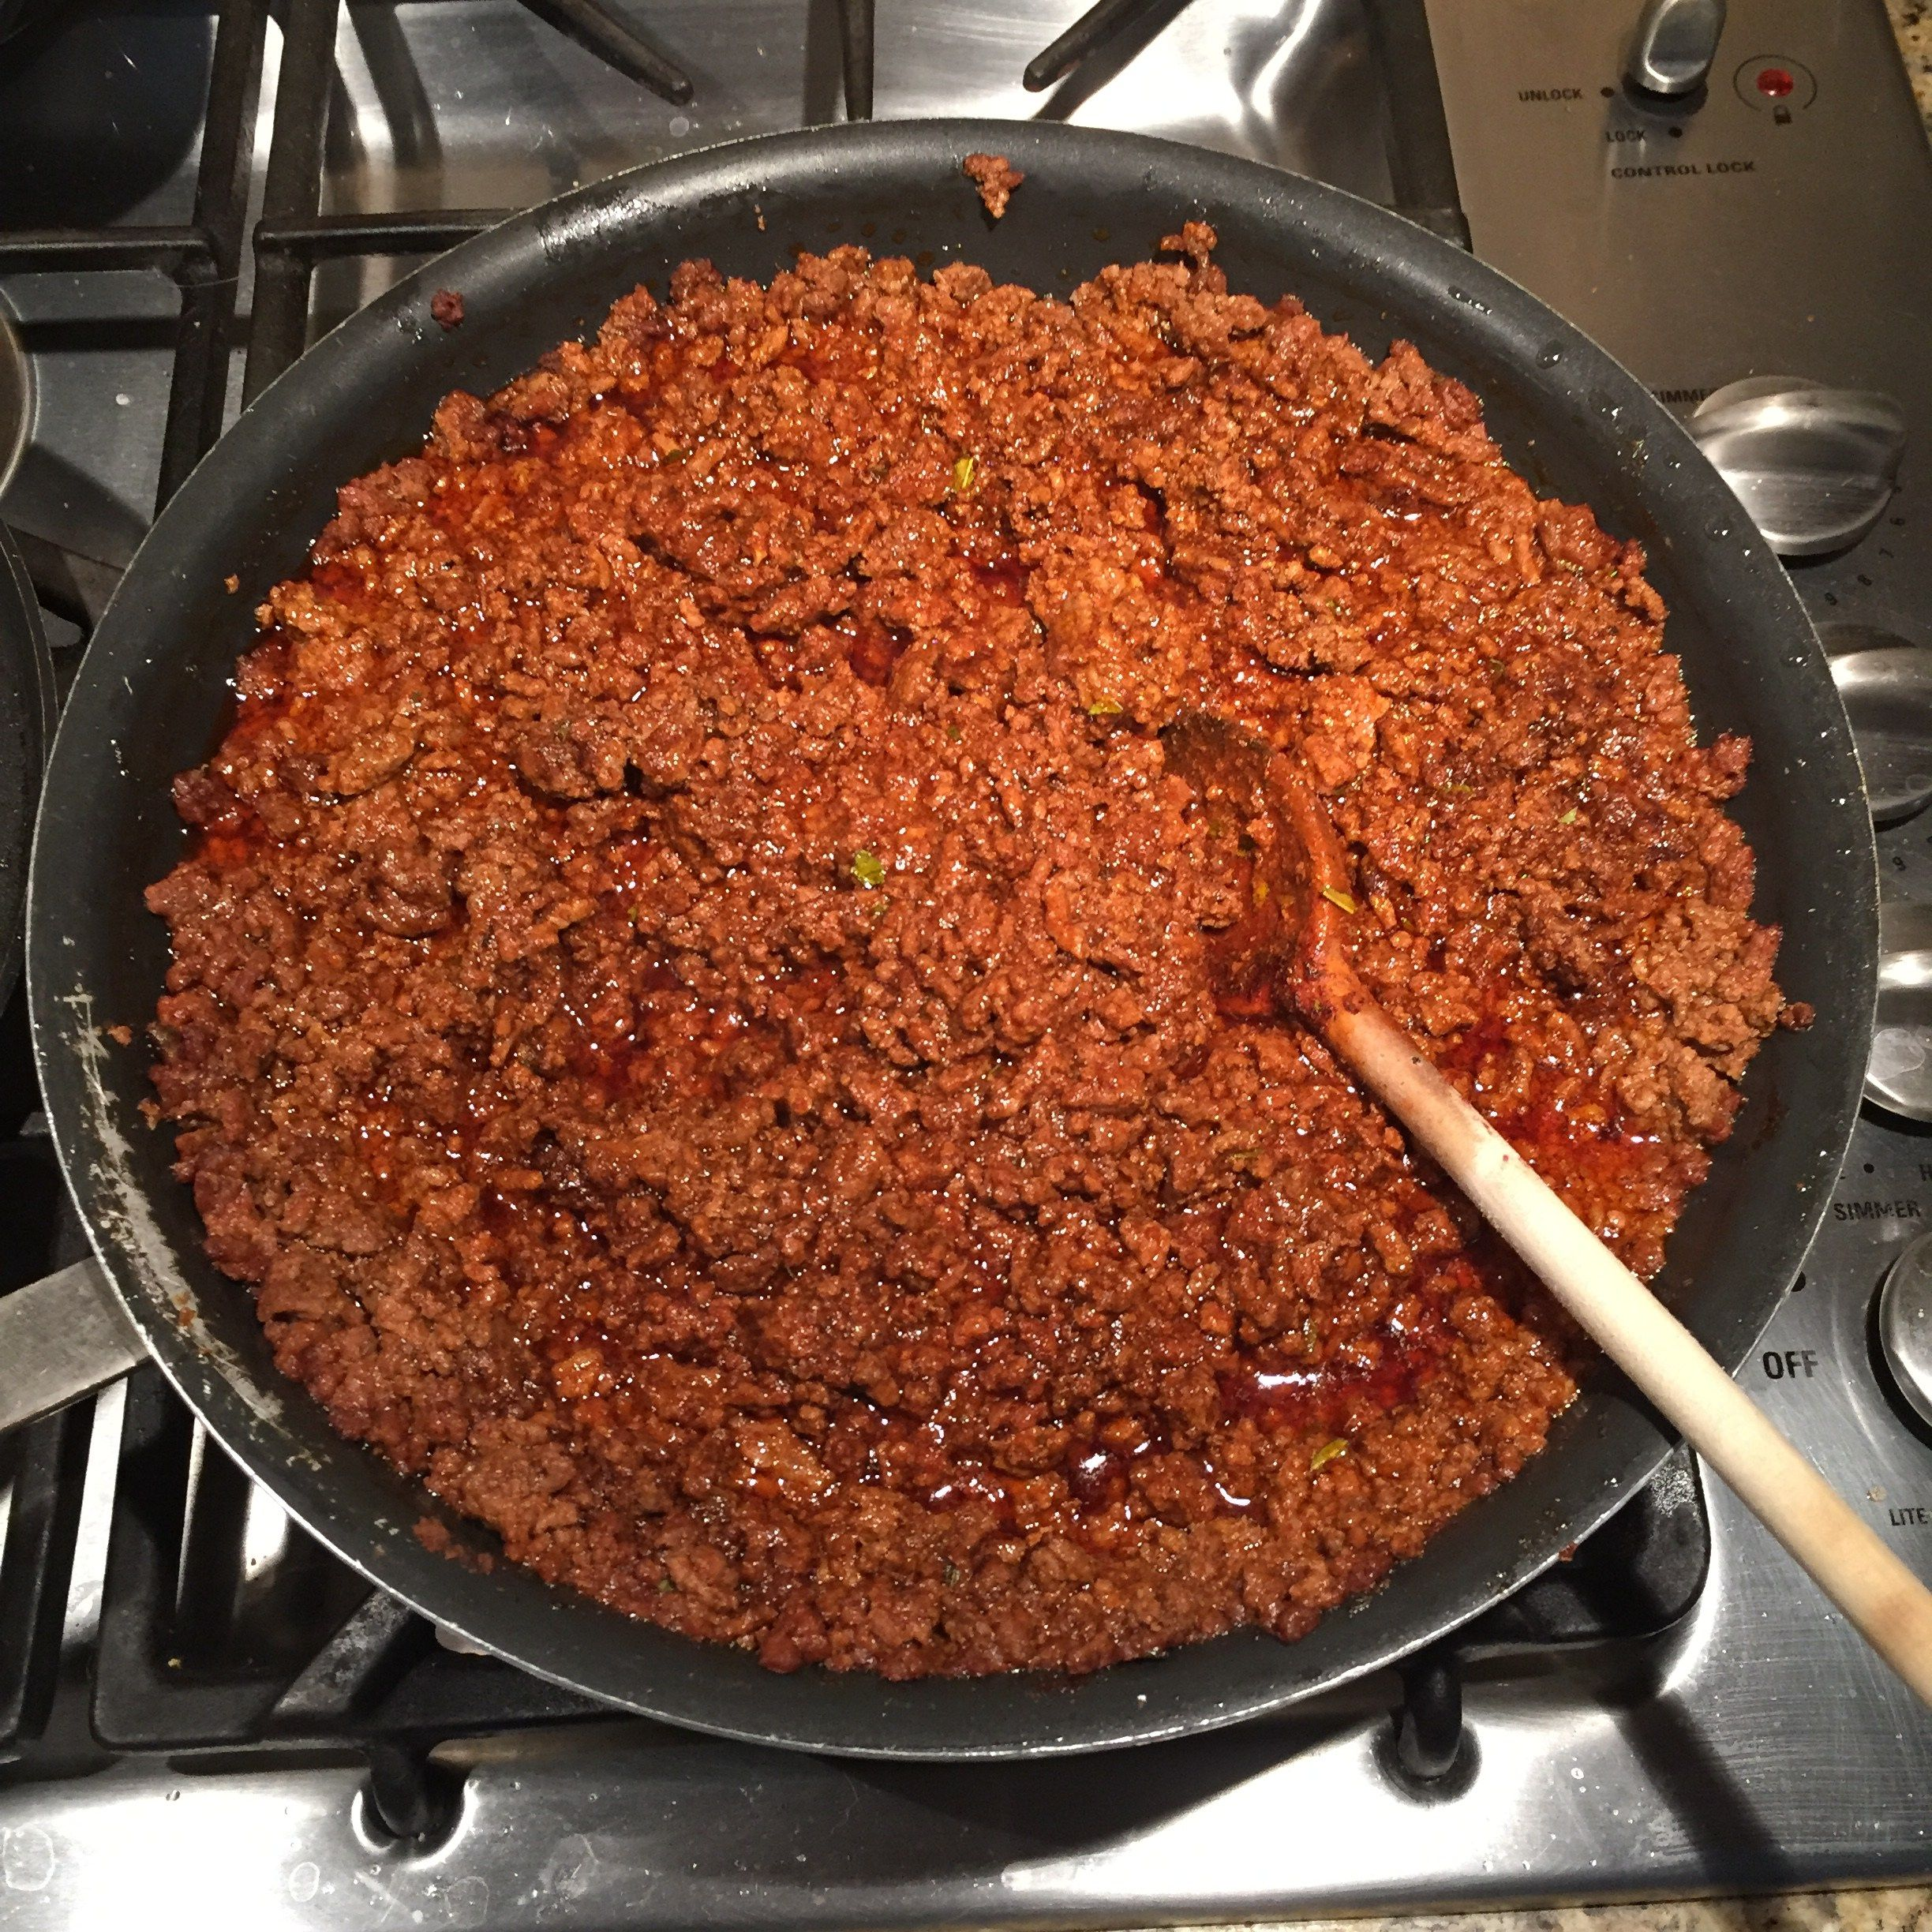 I Make This On A Regular Basis. It's The Best Chili! Give